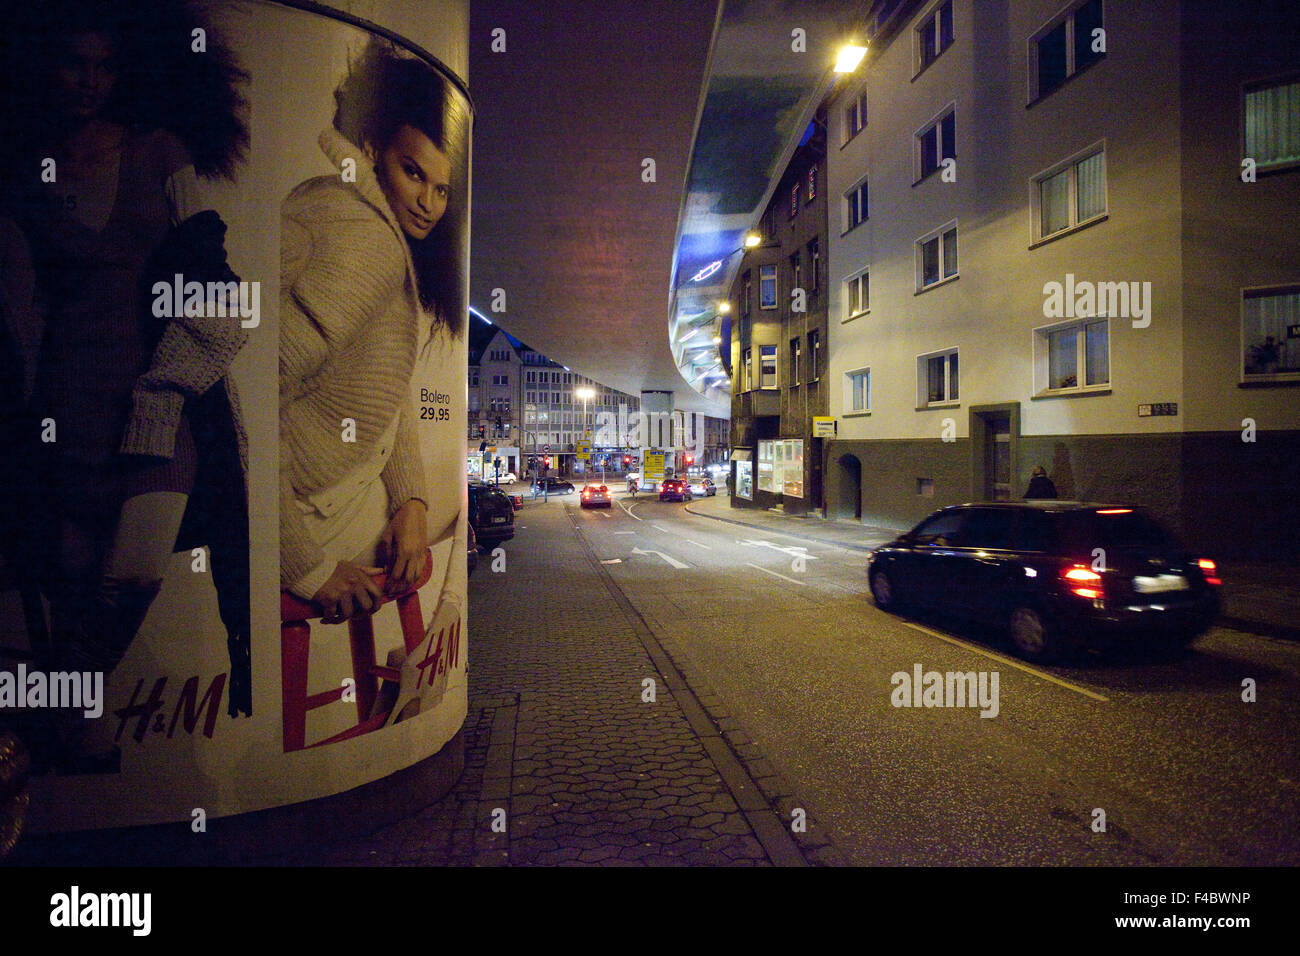 Level 2, Hagen, Germany - Stock Image